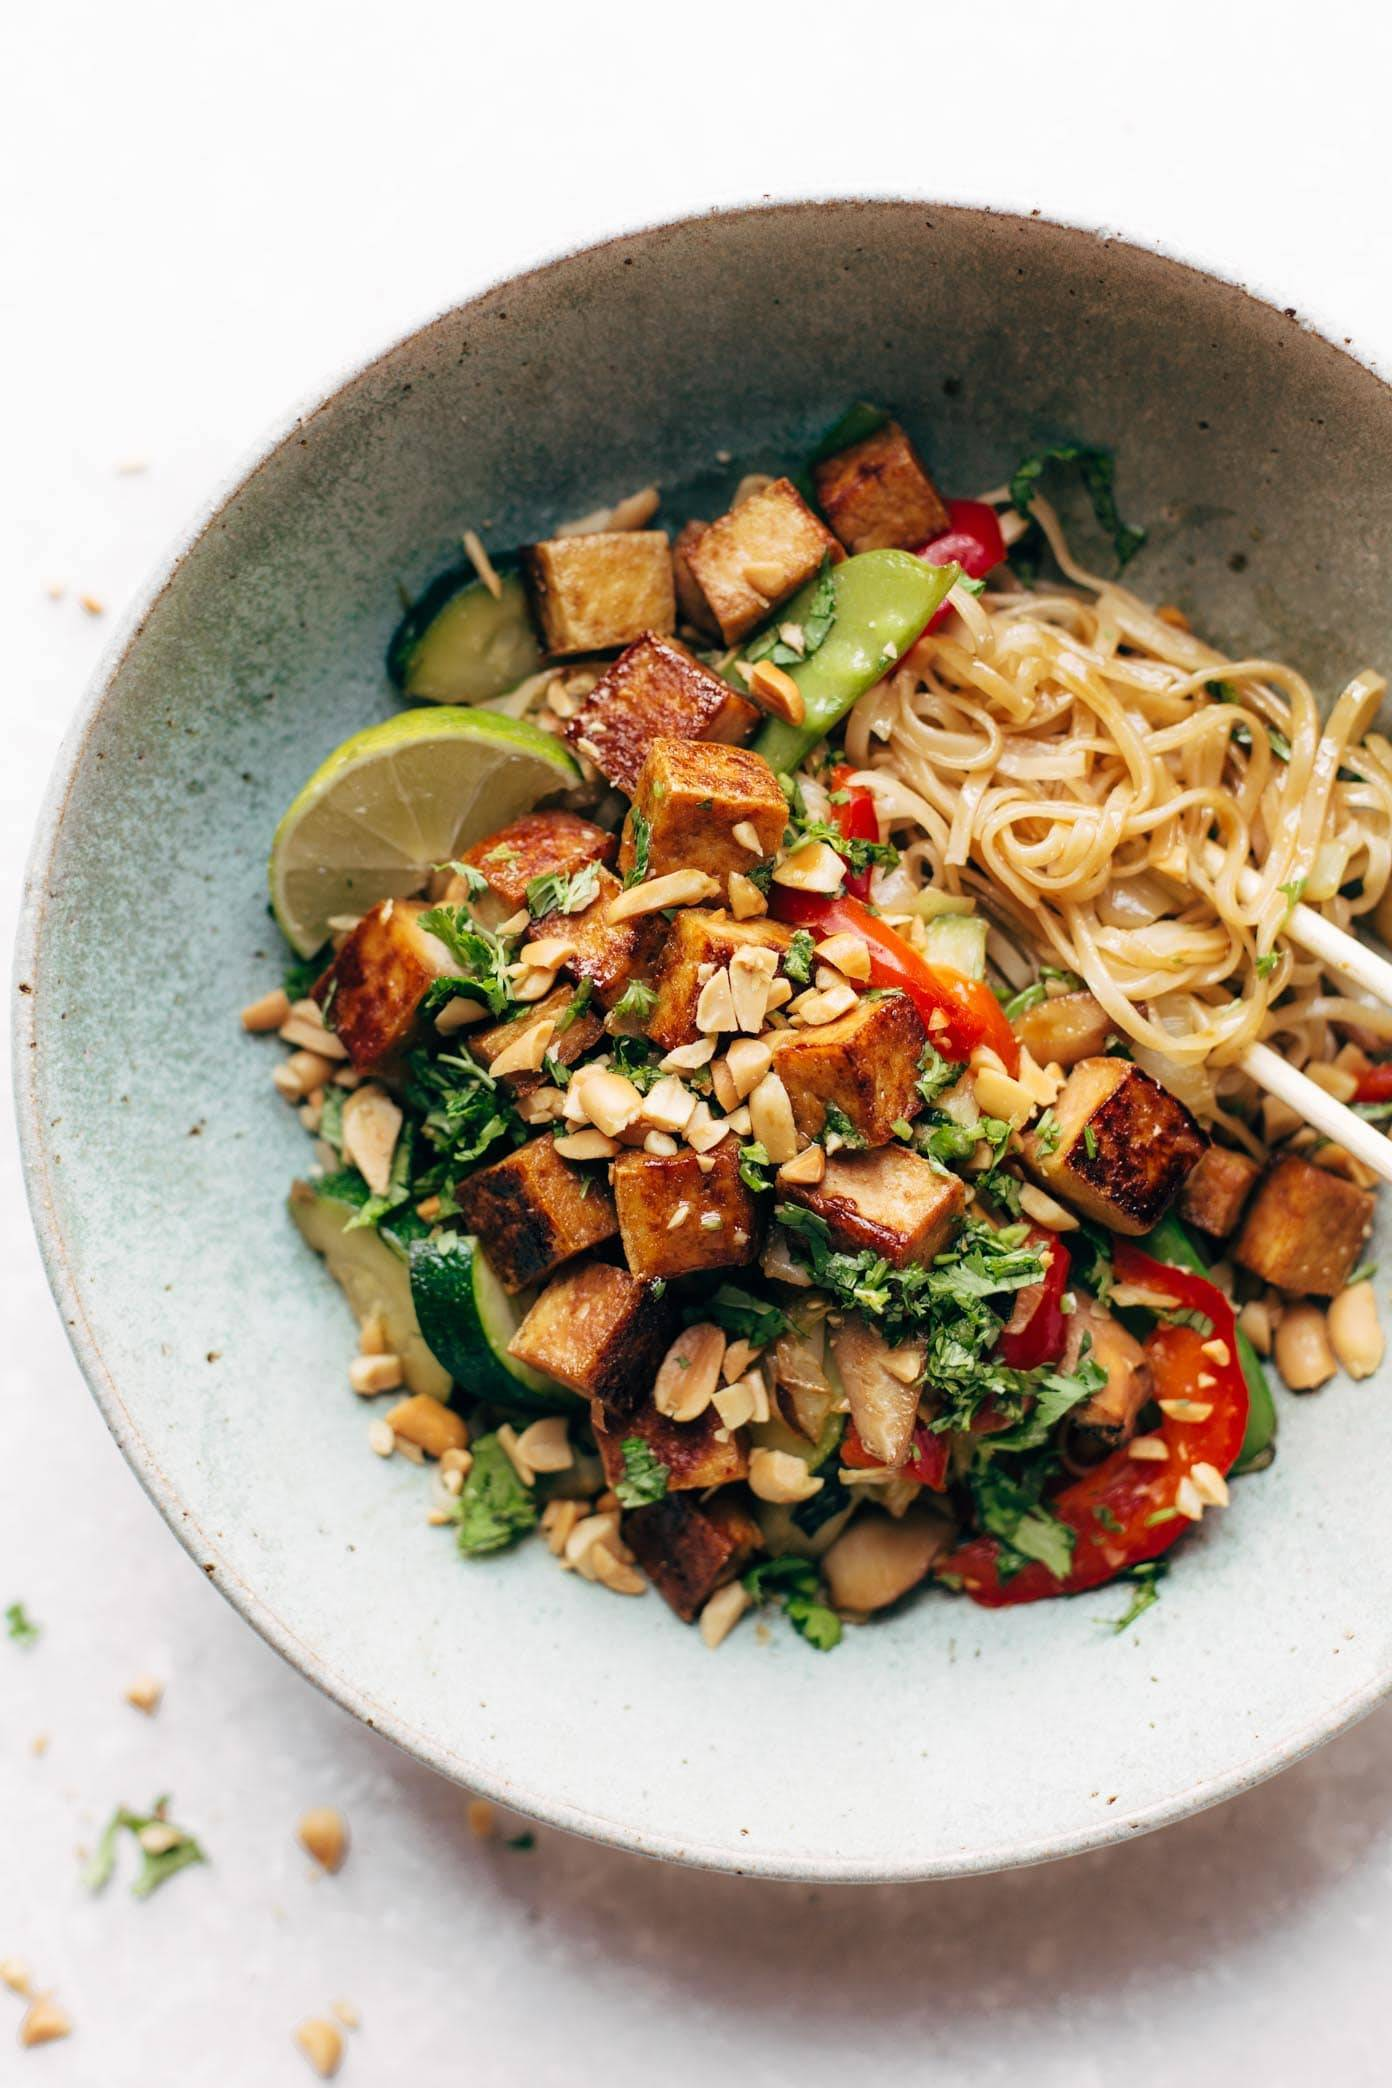 Back Pocket Stir Fry with Noodles - simplicity wins. brown rice noodles with tofu and all kinds of colorful veggies for a quick and easy dinner! vegan, vegetarian.   pinchofyum.com